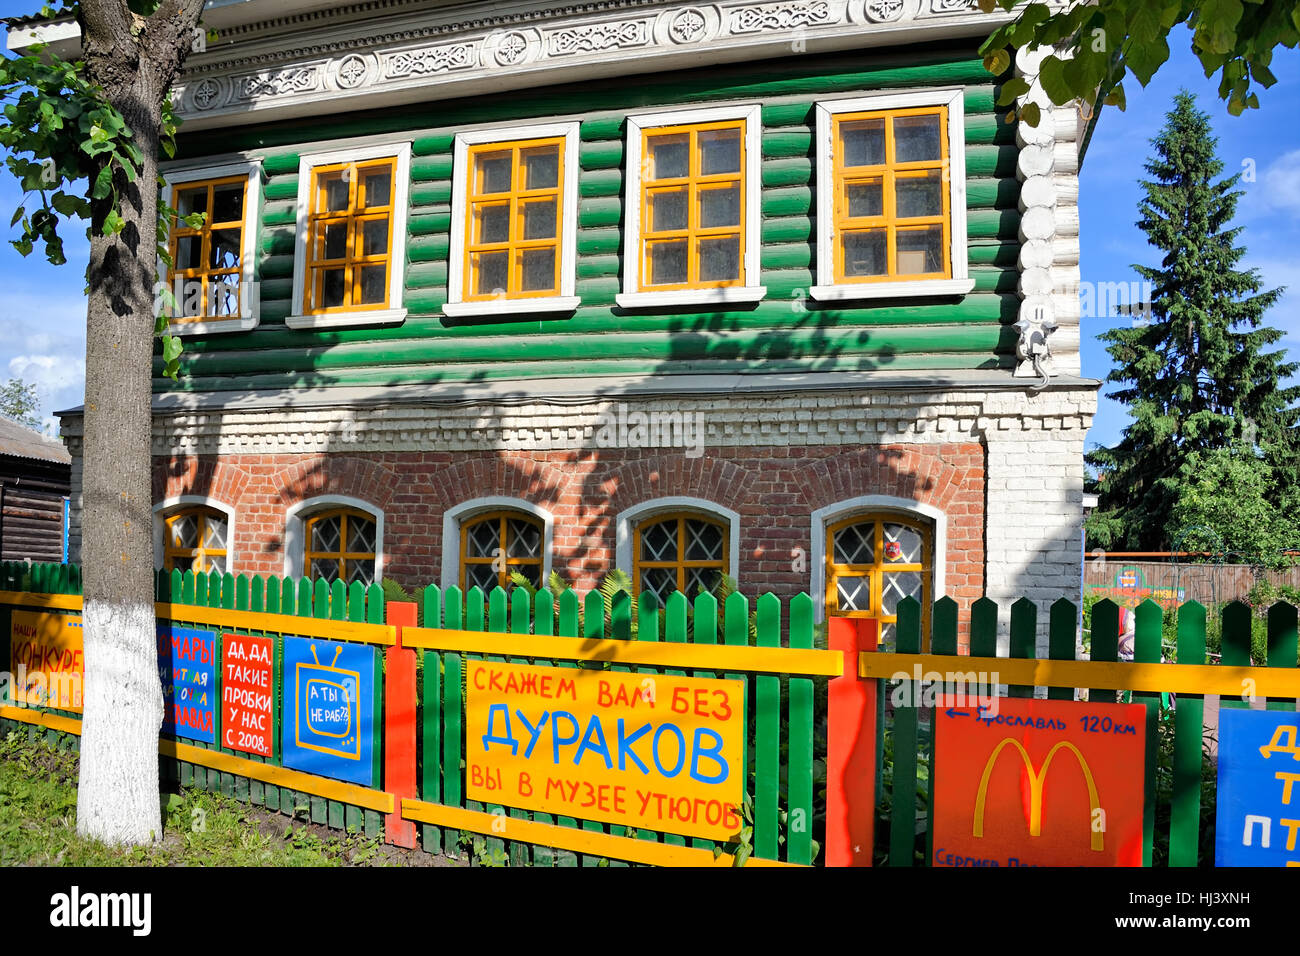 Festive Museum of the Flat Irons in Old Merchant's House. Pereslav-Zalessky, Sovetskaya street, Russia. - Stock Image